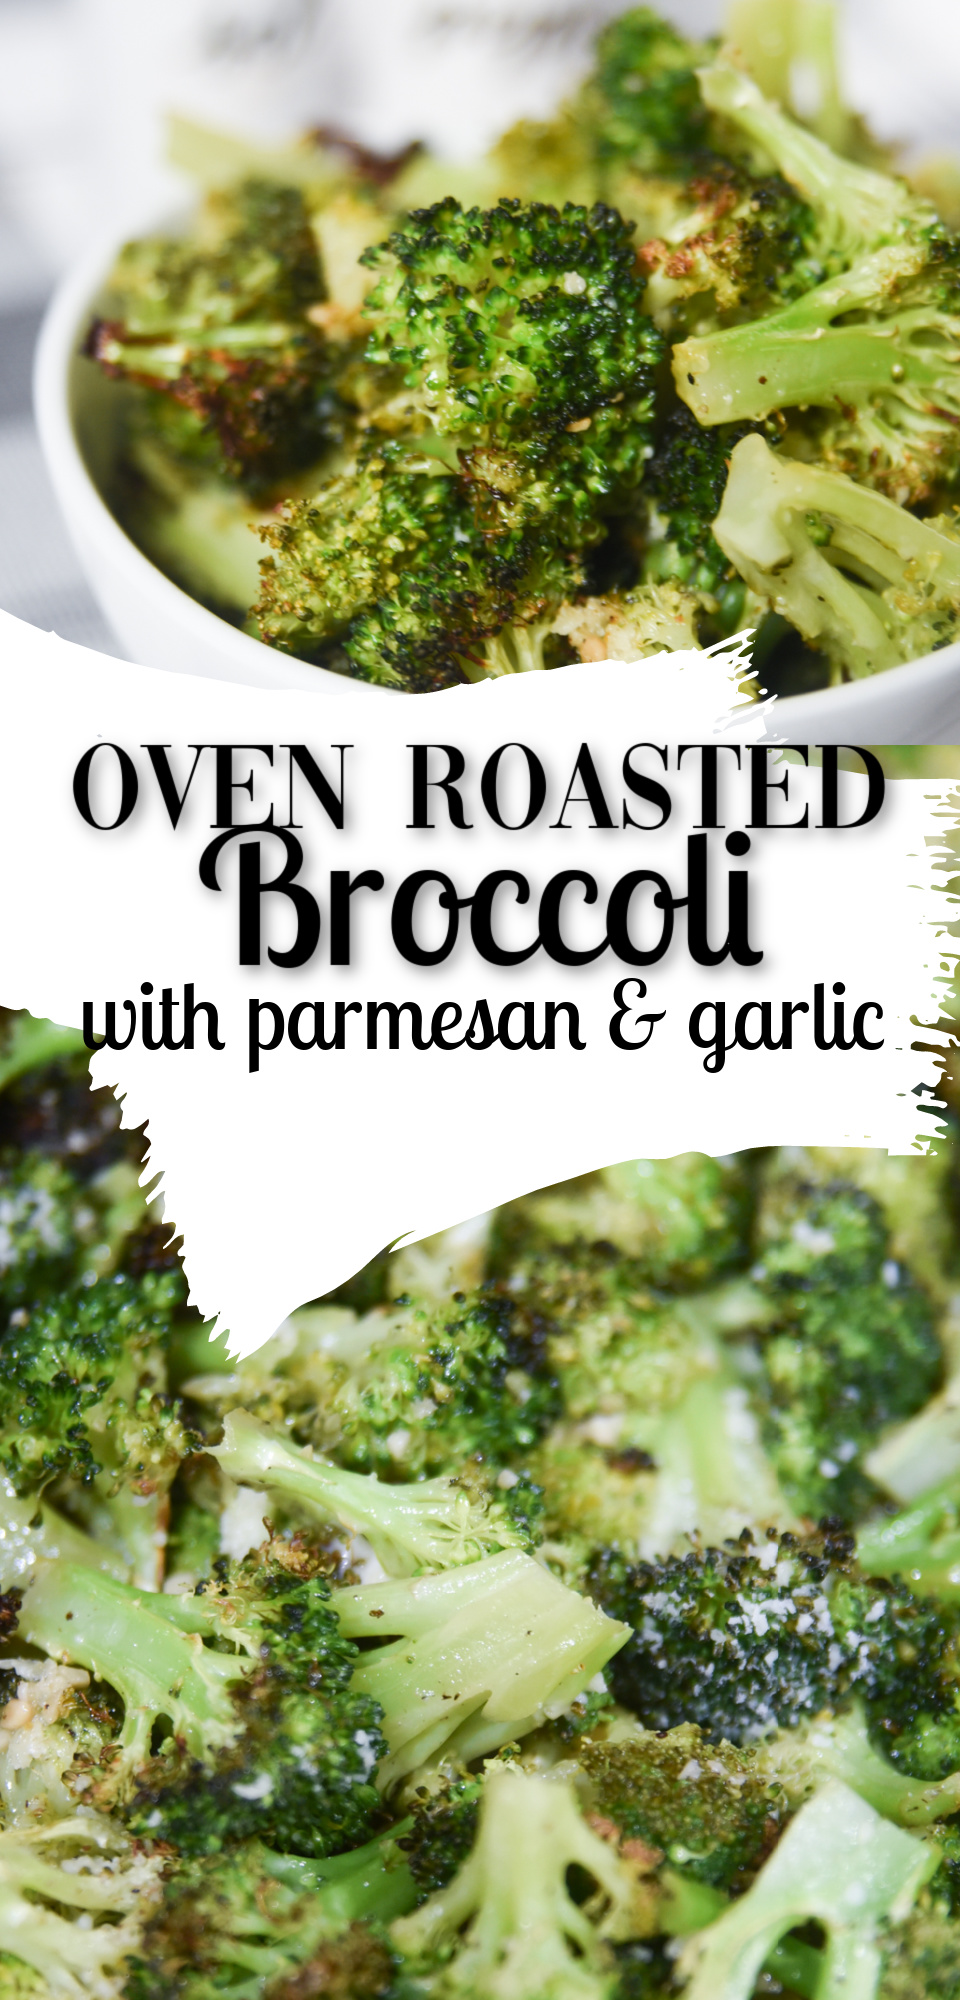 Oven Roasted Broccoli is the perfect side dish for any meal. Enjoy this vegetable in a whole new way when you bake Broccoli in your oven. Roasted Broccoli with Parmesan and Garlic is a simple way to make this vegetable dish really stand out! via @simplysidedishes89